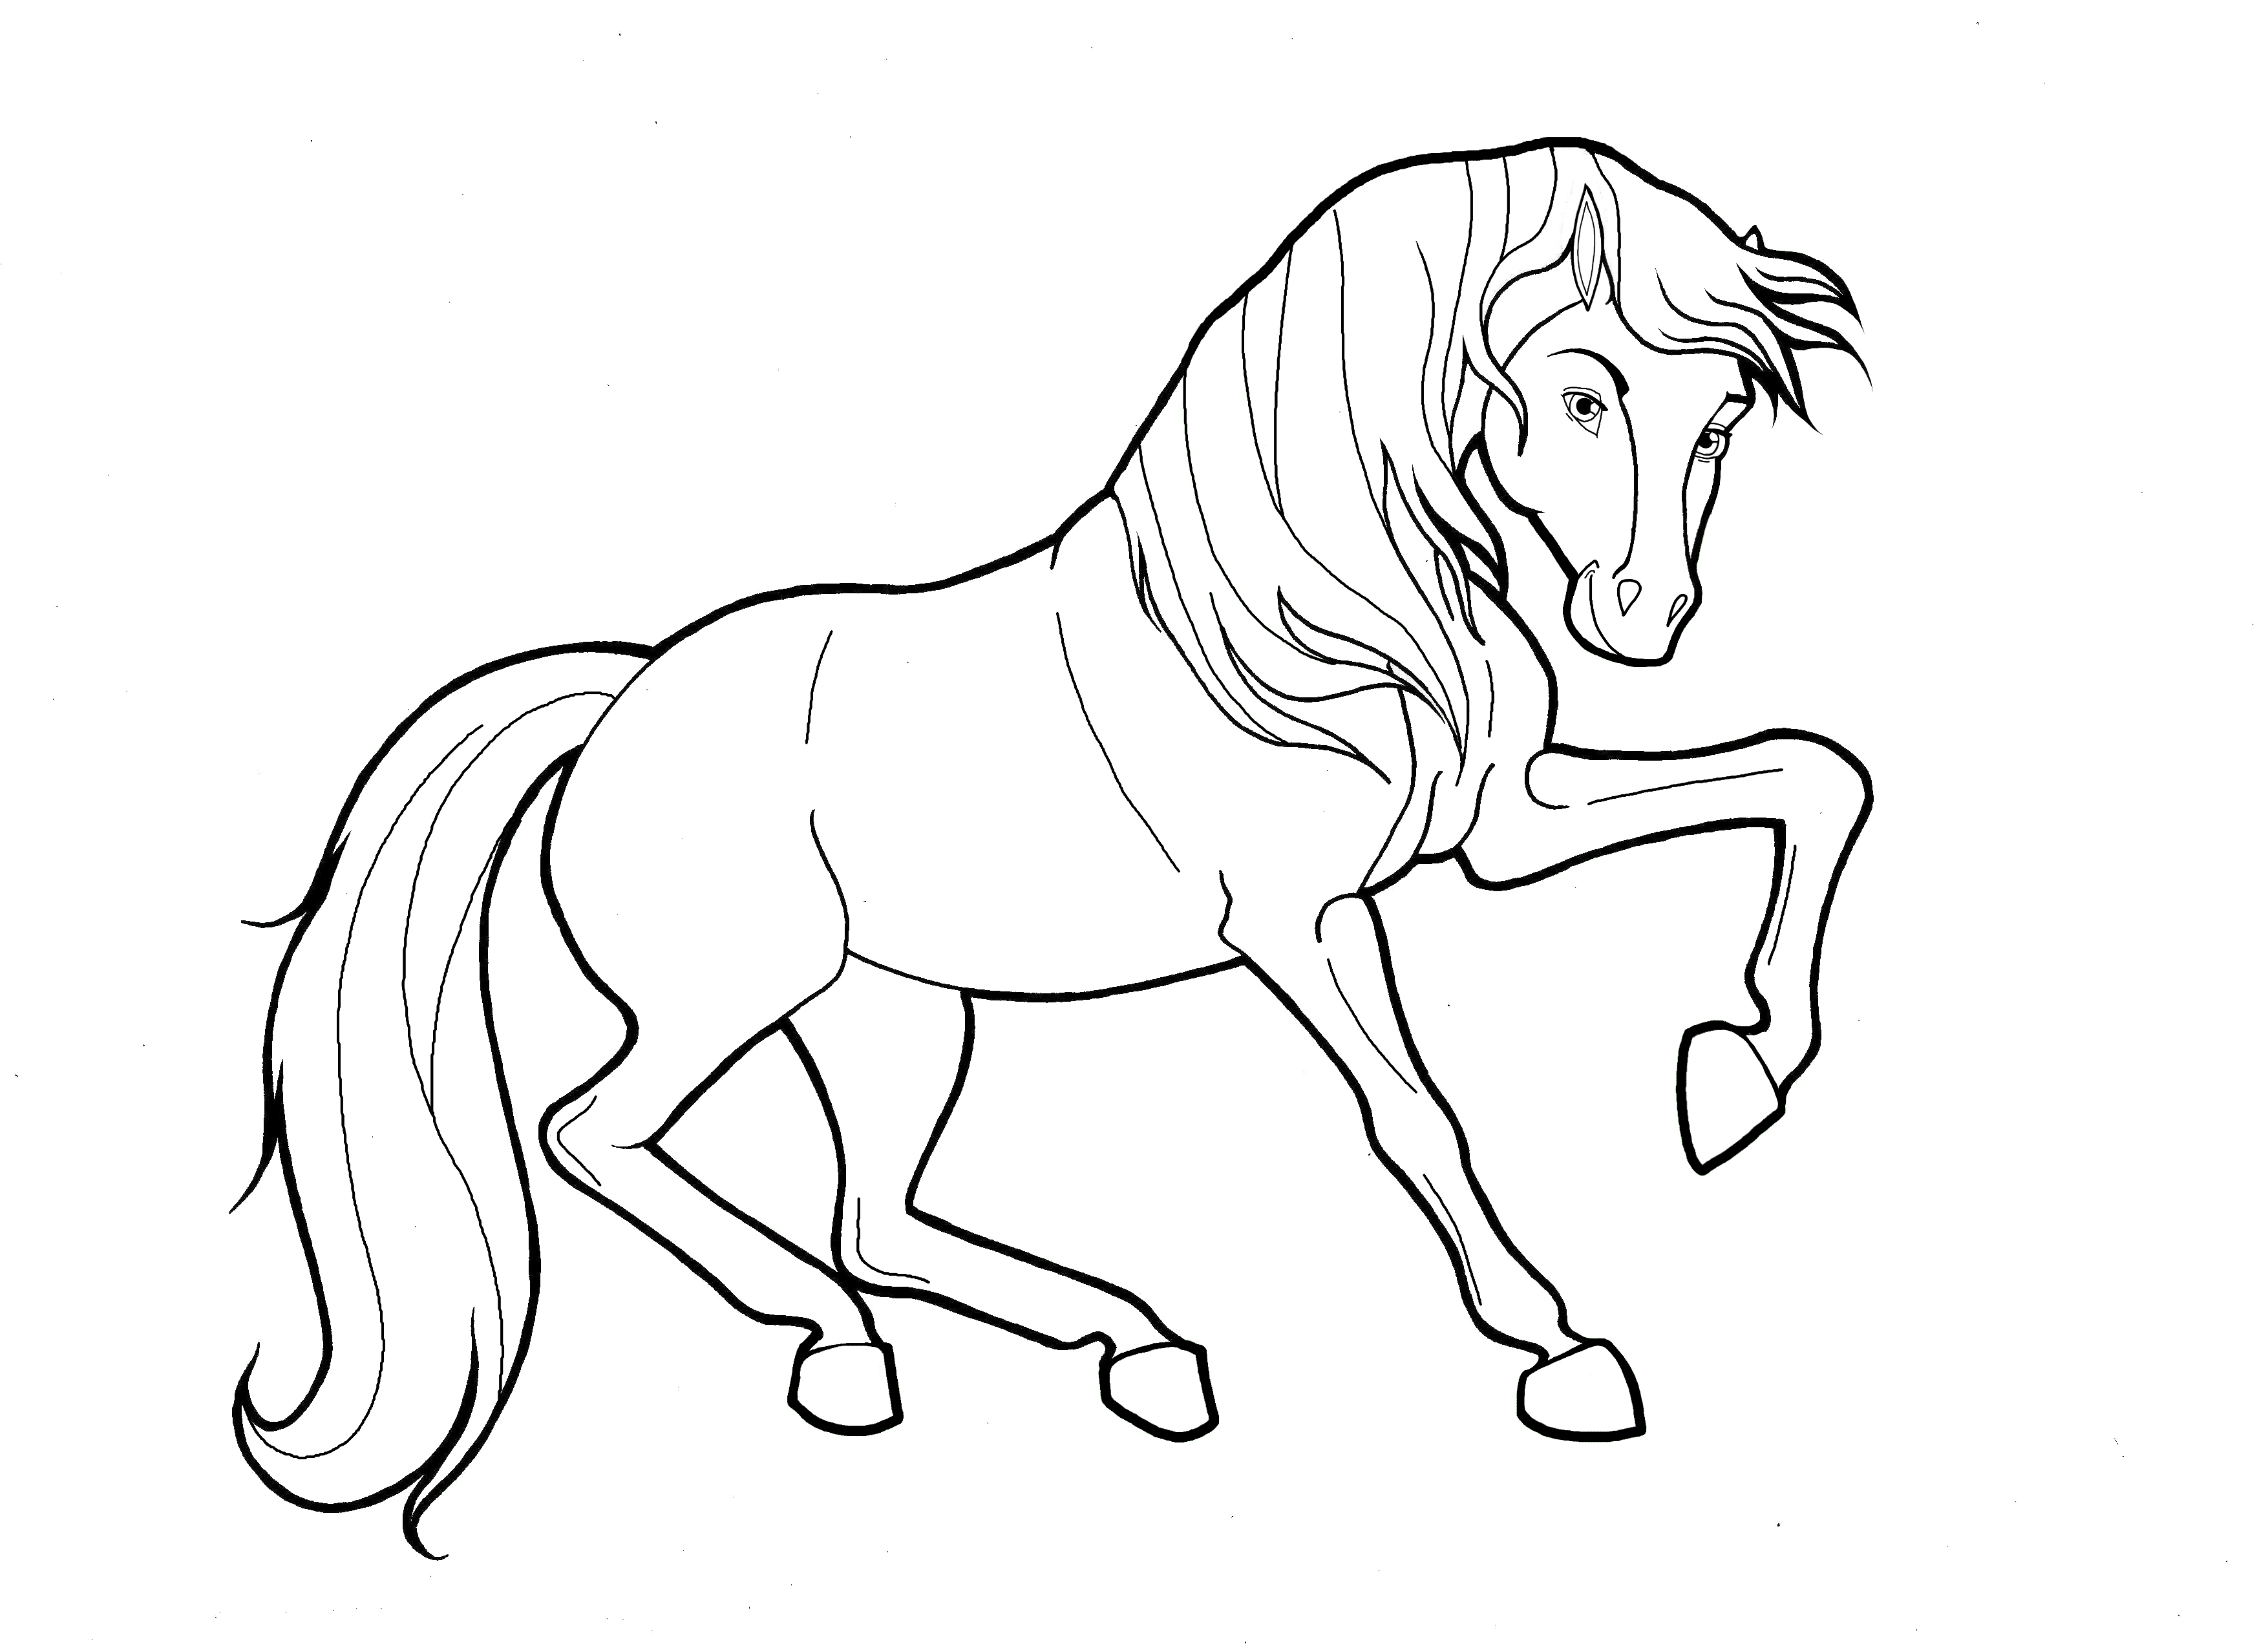 coloring horses printable 9 inspirational pages to color selah works cindy39s coloring horses printable